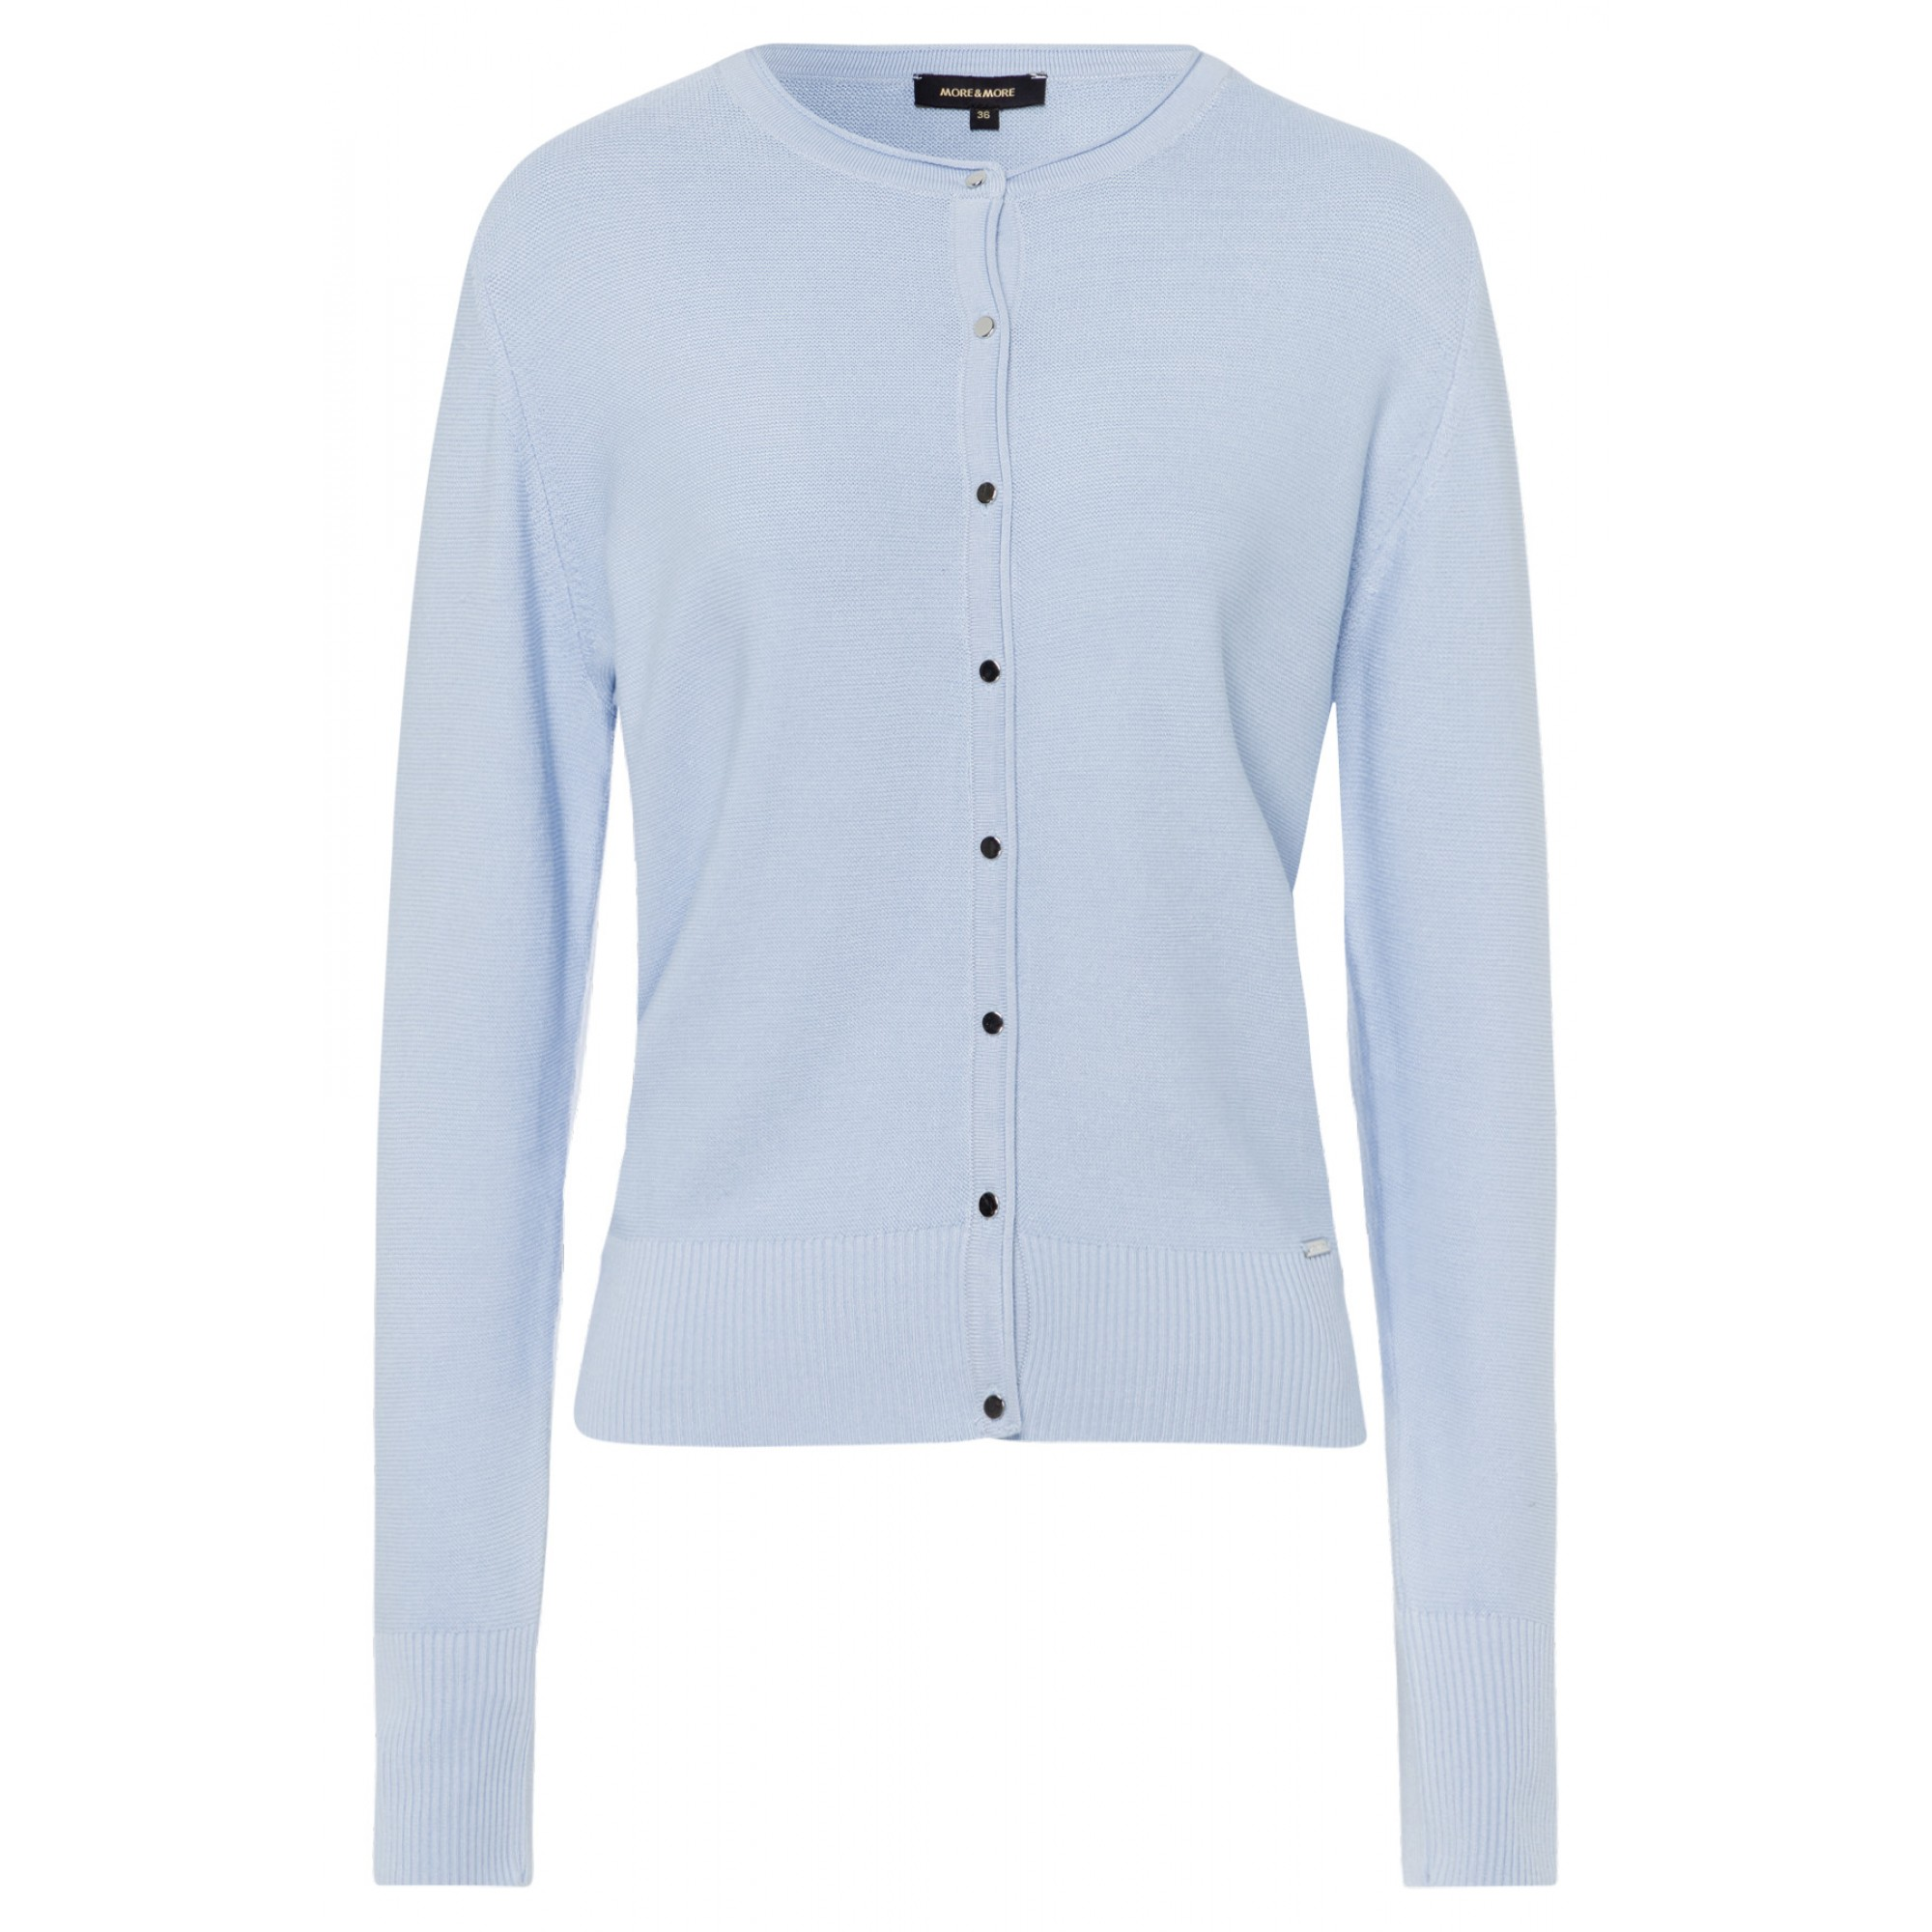 Cardigan, soft blue 11821548-0305 1